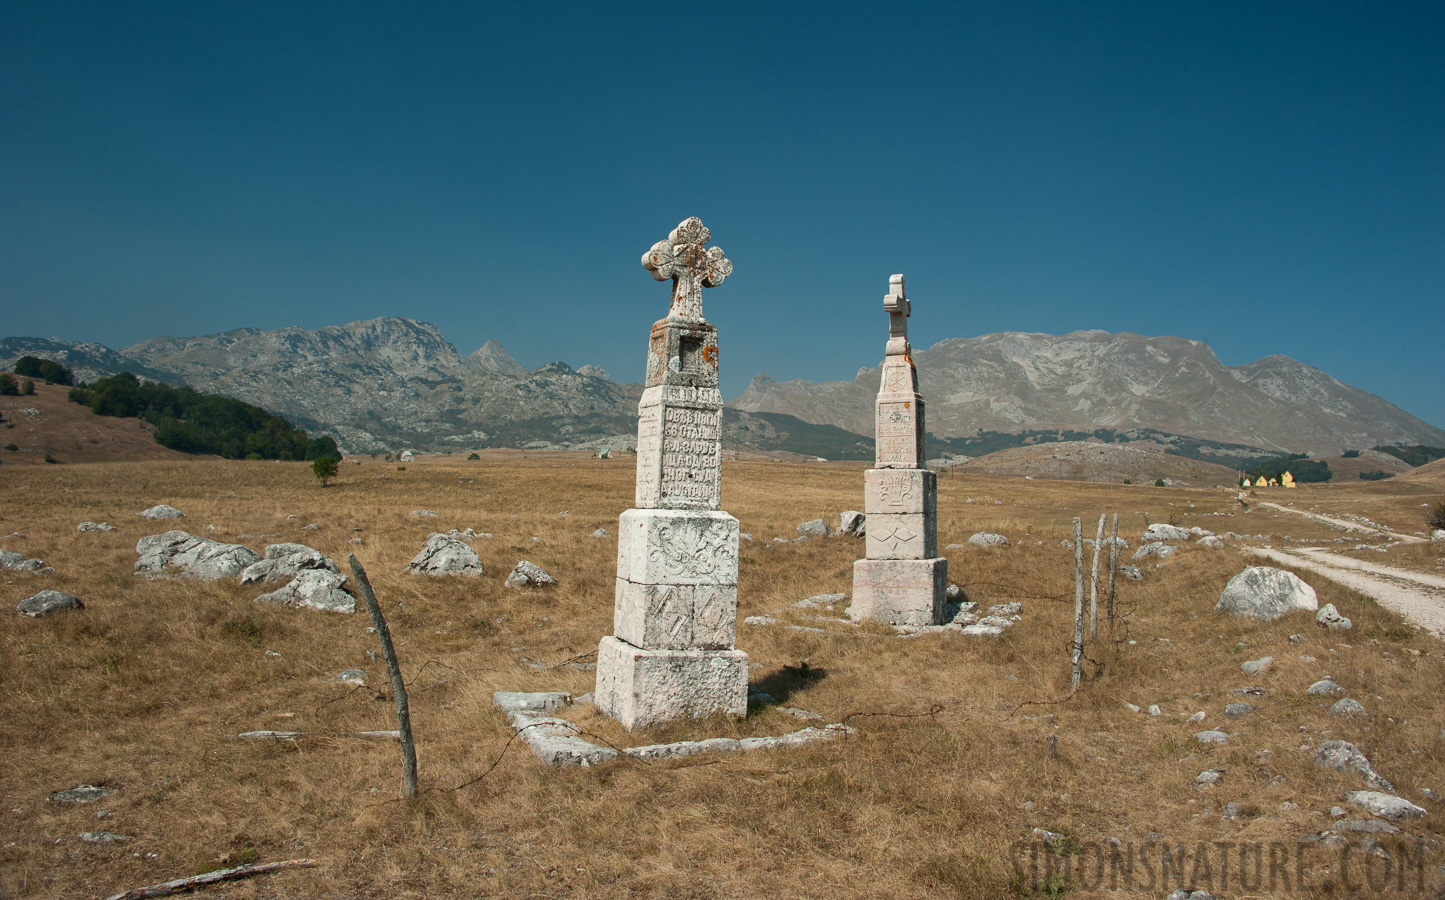 Montenegro - In the region of the Durmitor massif [28 mm, 1/200 sec at f / 14, ISO 400]